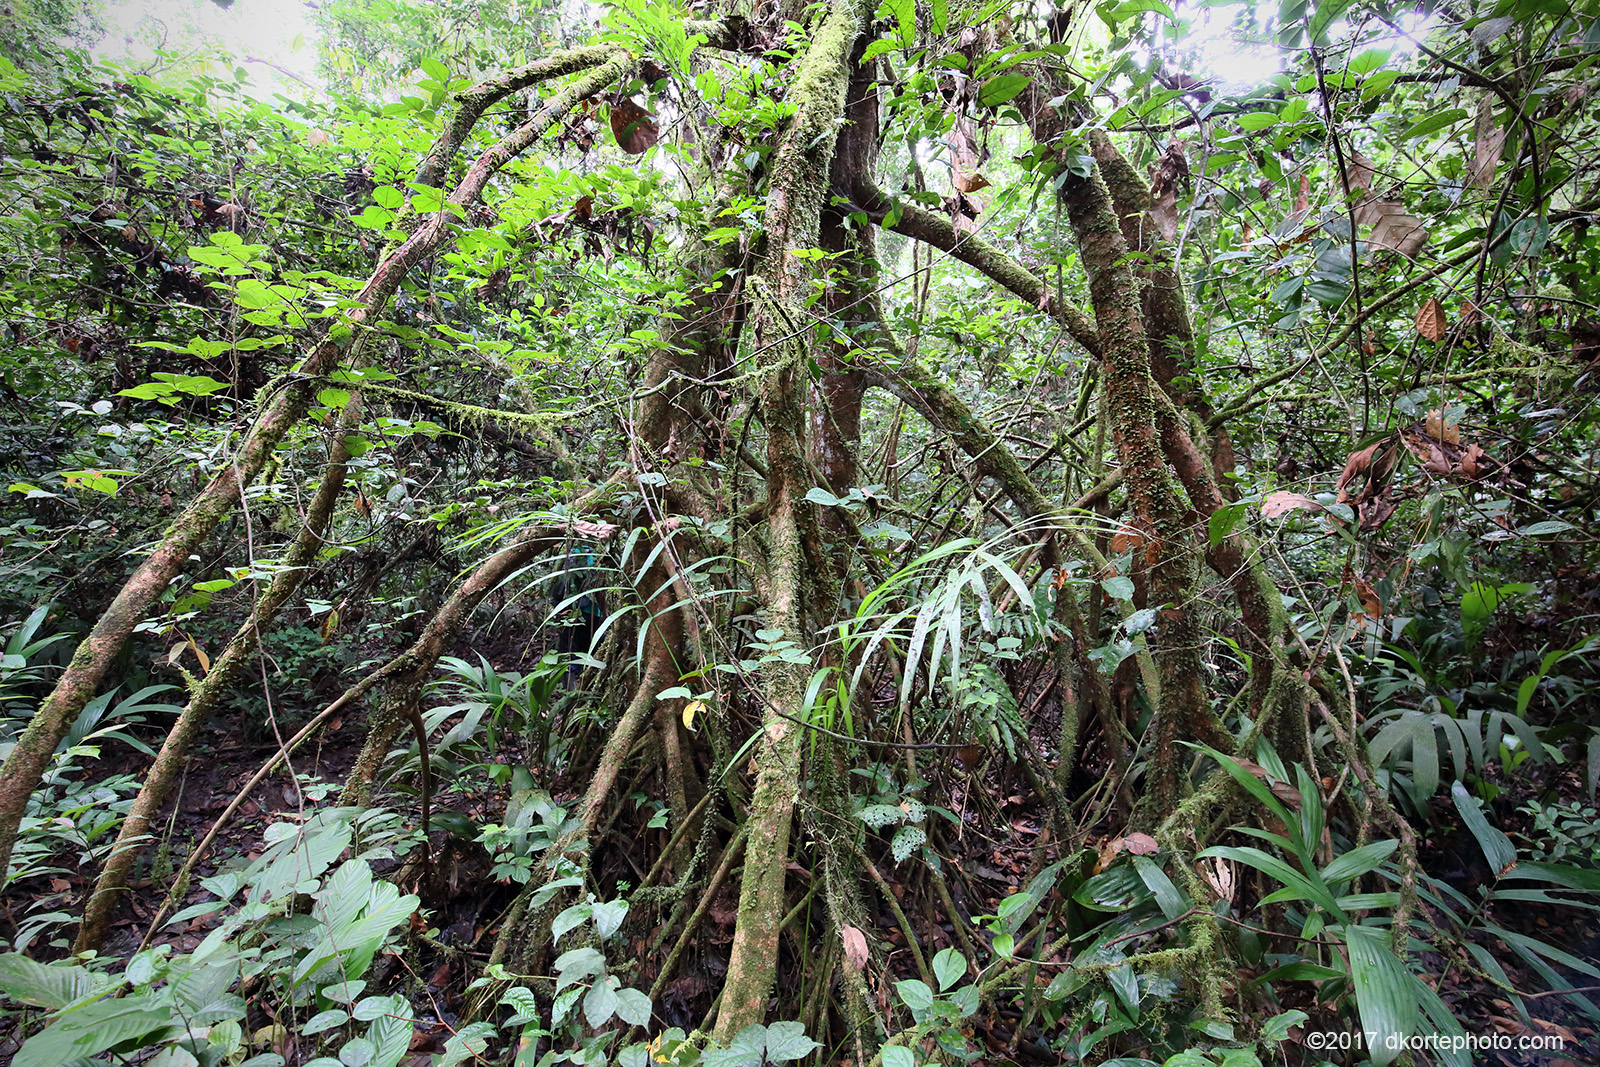 Uapaca trees are supported by stilt roots in Sapo National Park.